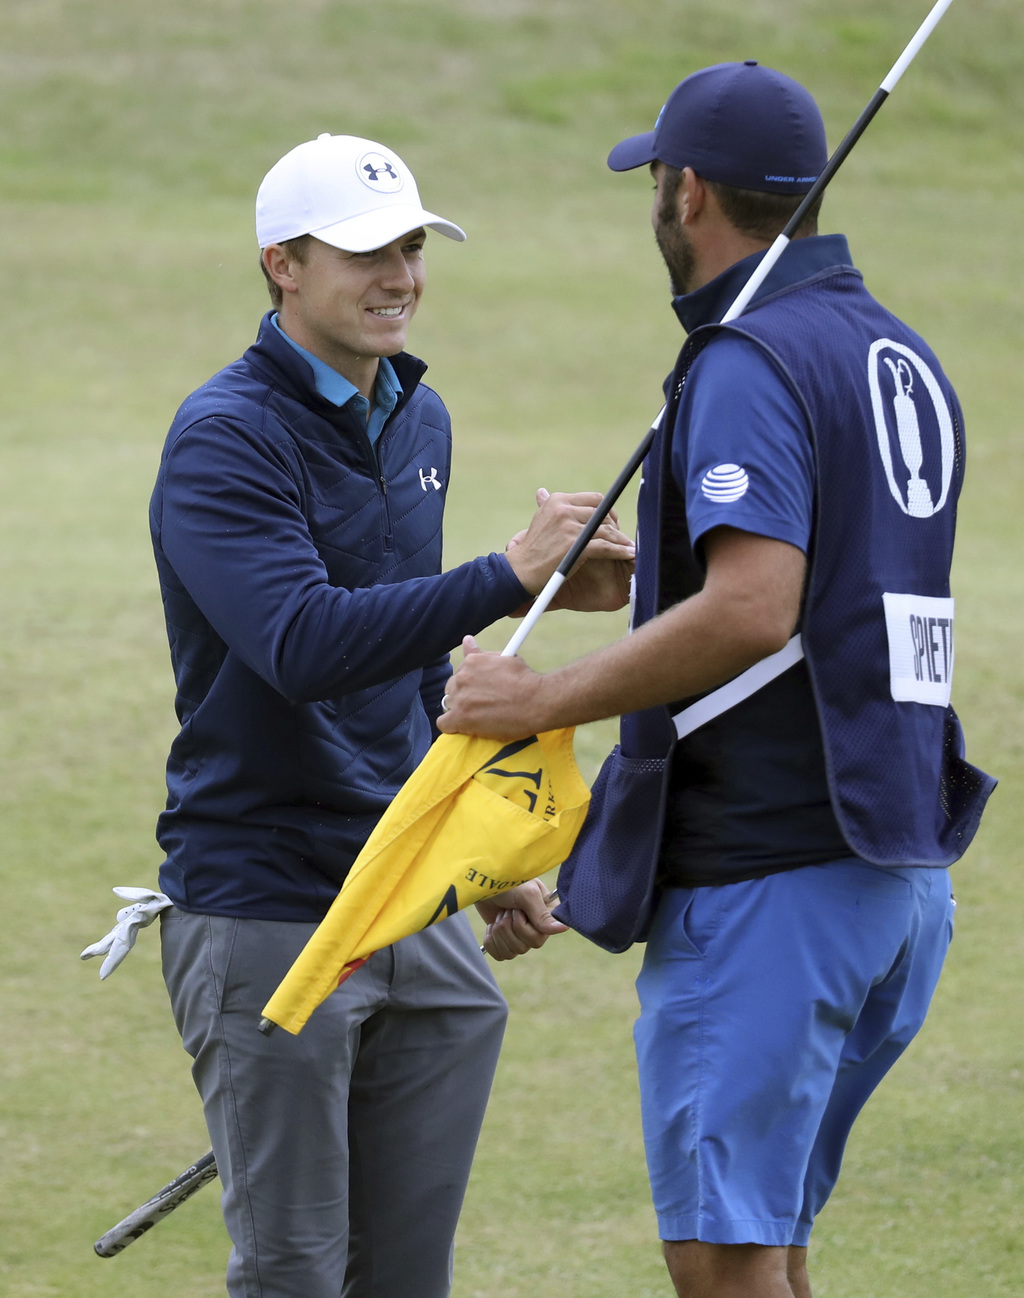 Jordan Spieth of the United States shakes hands with his caddie Michael Greiler after winning the British Open Golf Championships at Royal Birkdale, S...